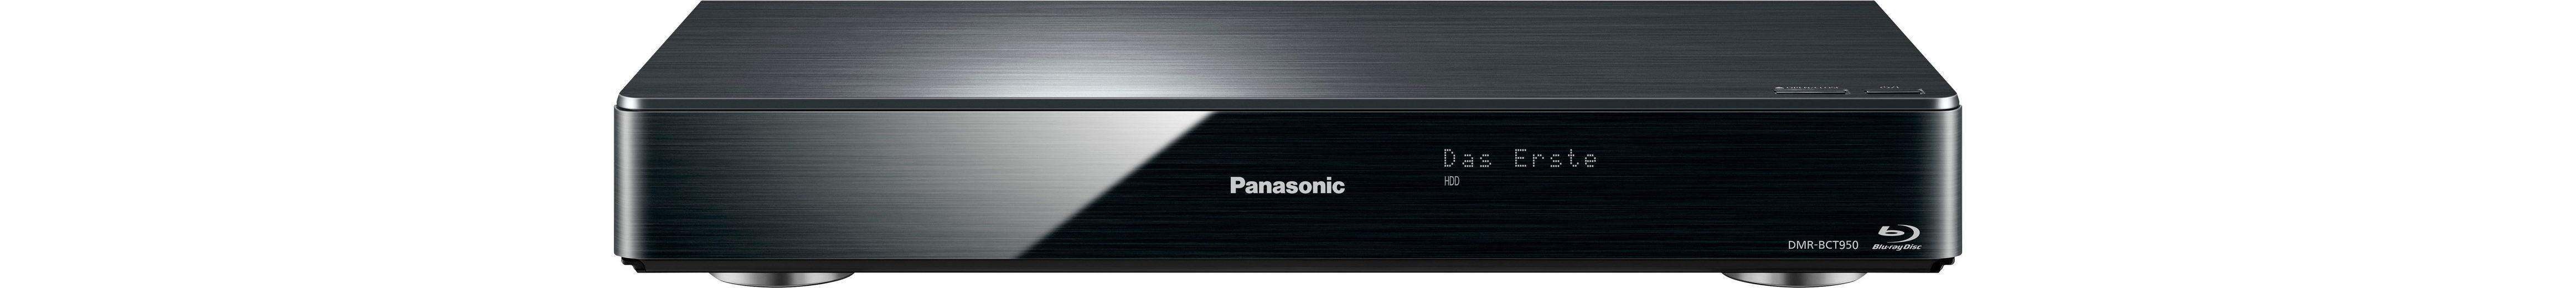 Panasonic DMR-BCT950EG Blu-ray-Recorder, 3D-fähig, 4K (Ultra-HD), 2000 GB, WLAN